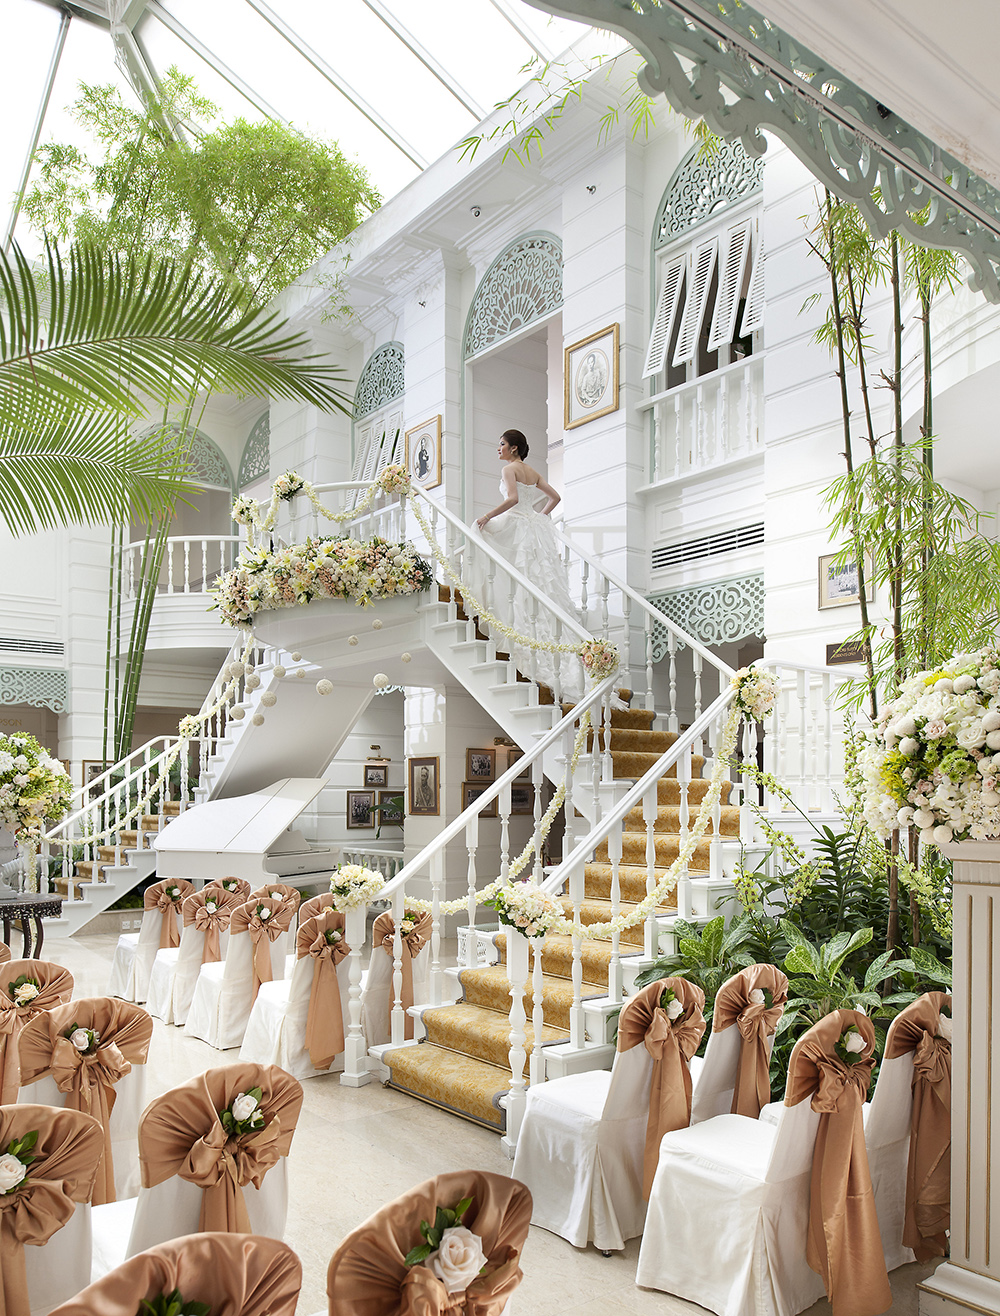 bangkok-wedding-venue-authors-wing-03